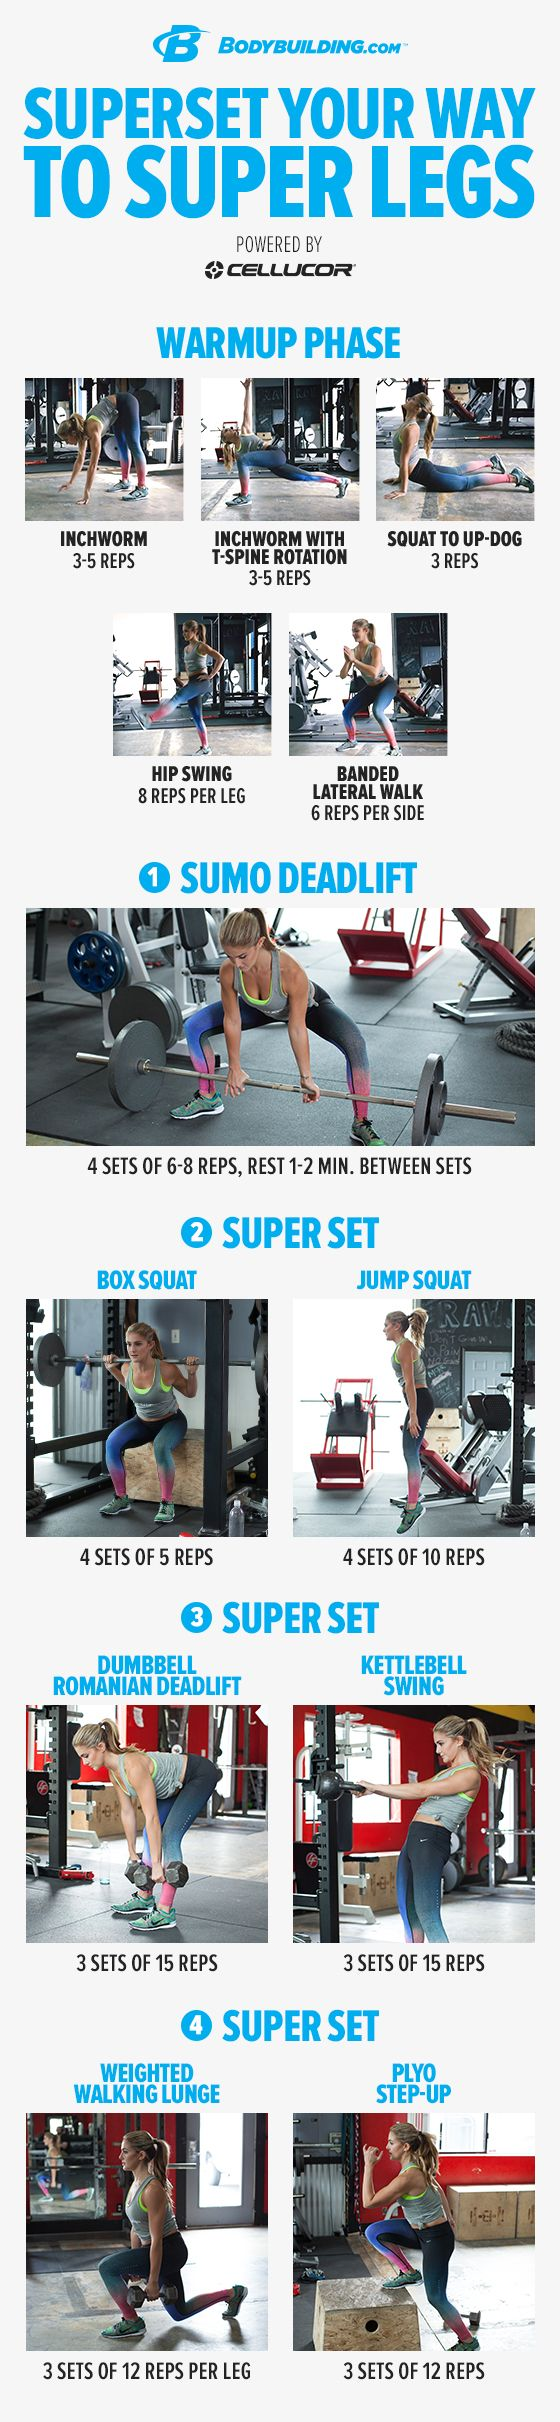 Superset Your Way To Super Legs! This power-developing leg workout will improve the strength and look of your glutes, hamstrings, and quads. Give it a try!